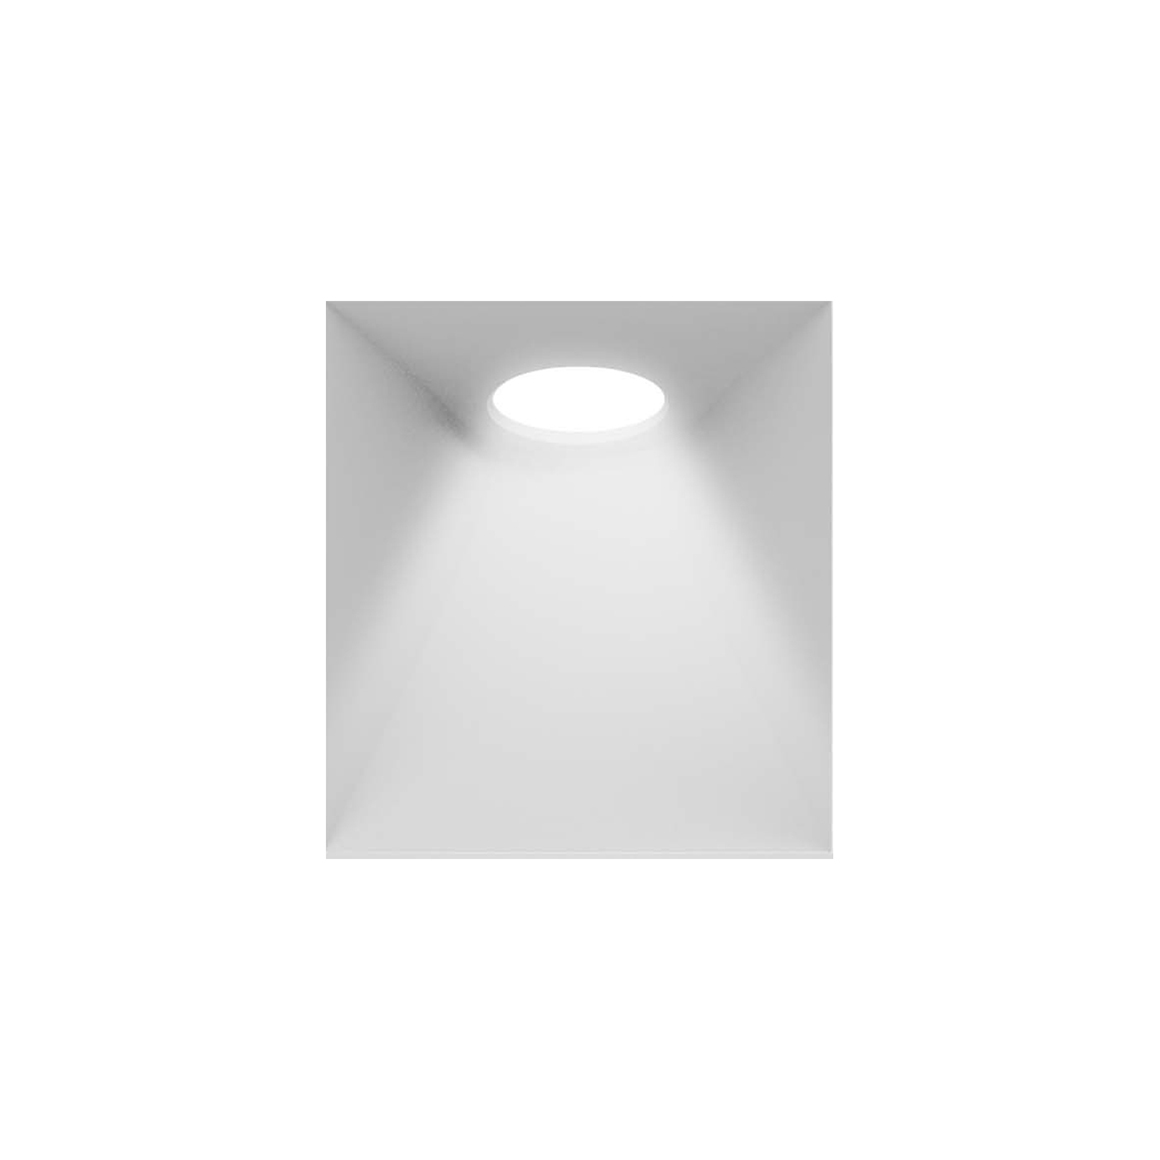 Recessed Round Wall Light _GDR